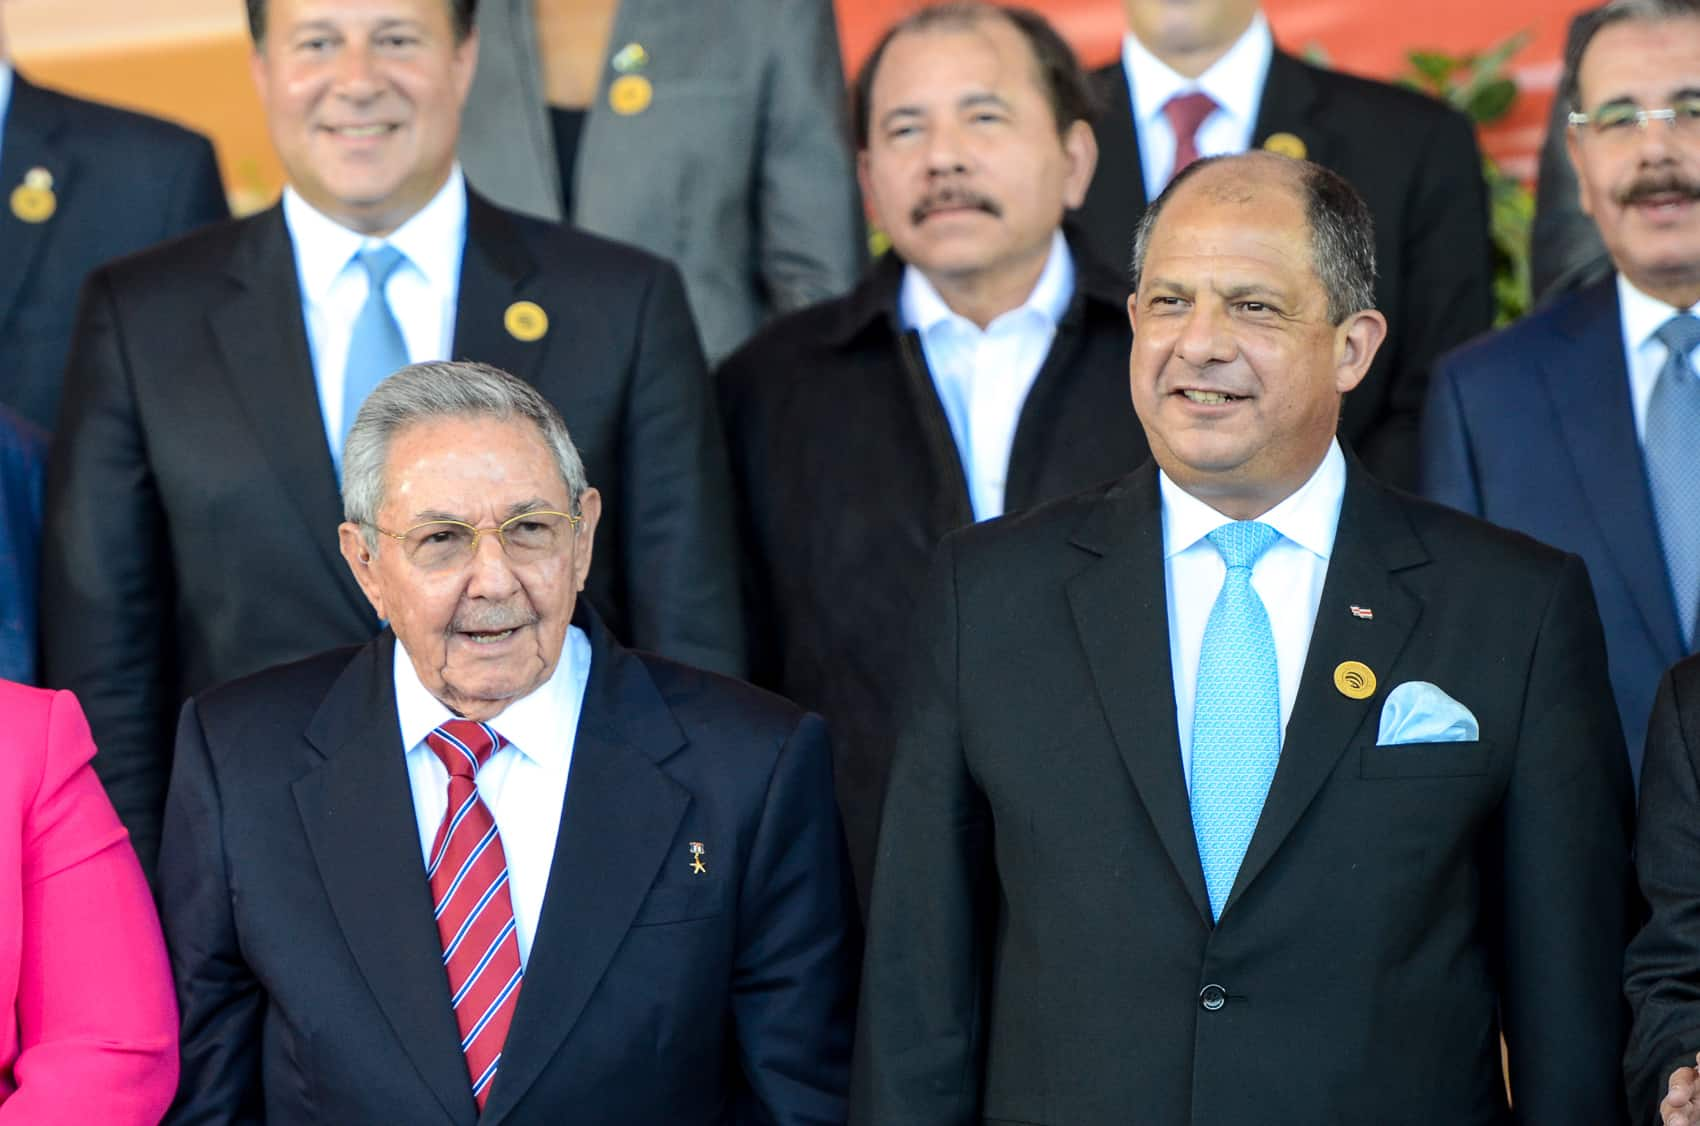 Us Not In Attendance But Very Present At 2015 Celac Summit In Costa